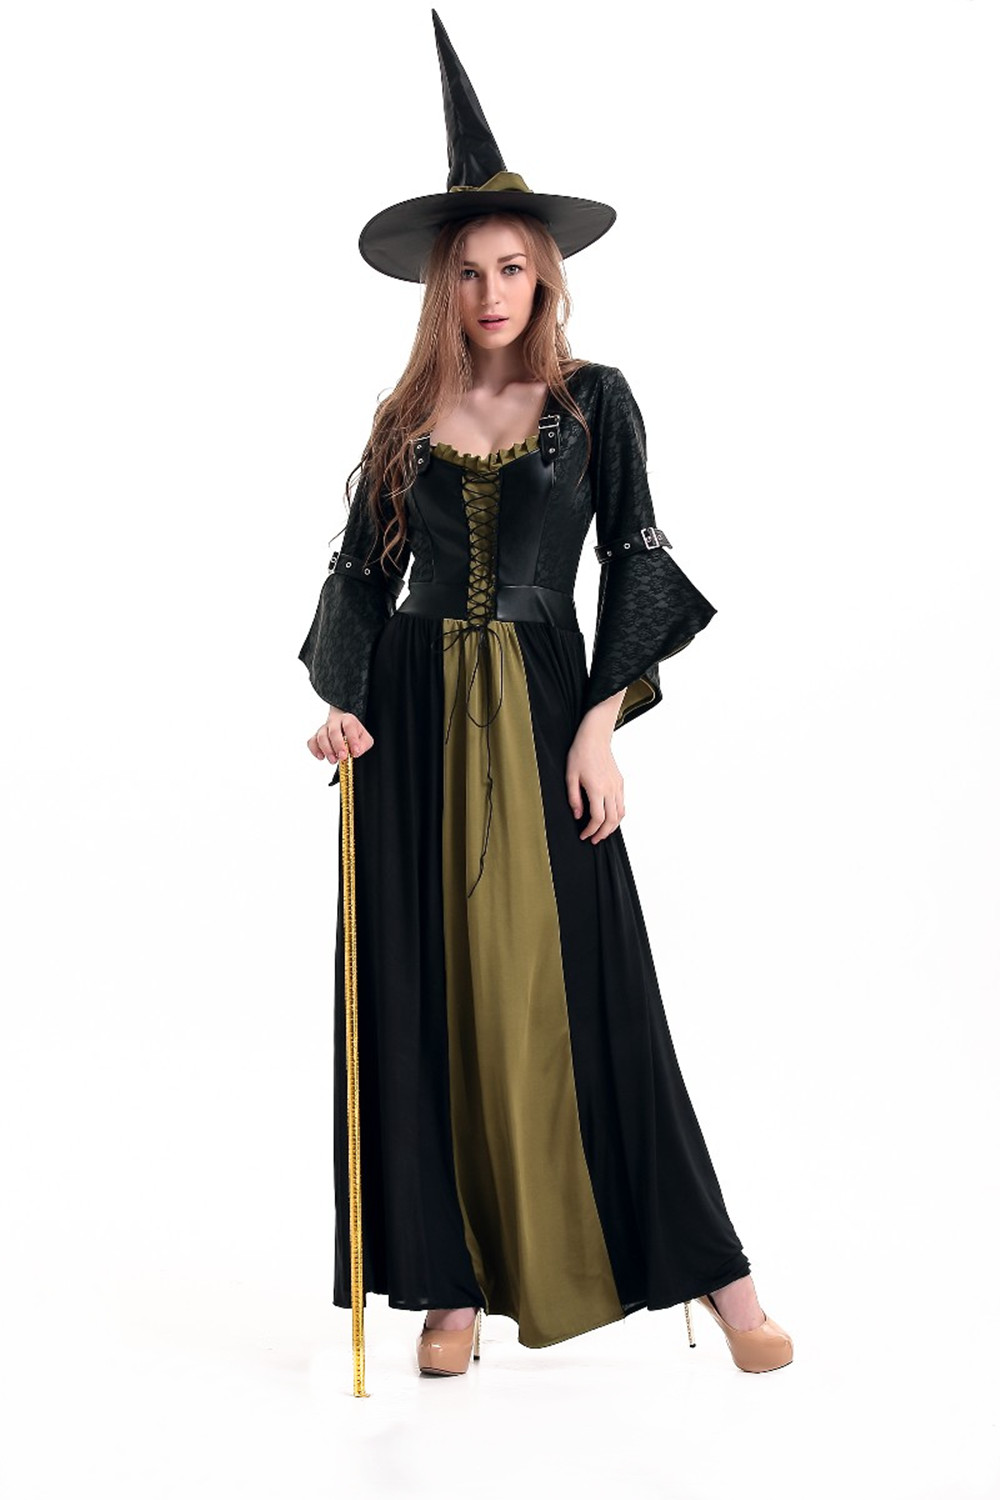 Aliexpress.com : Buy Devil Witch Woman Costumes for Sale Sexy ...